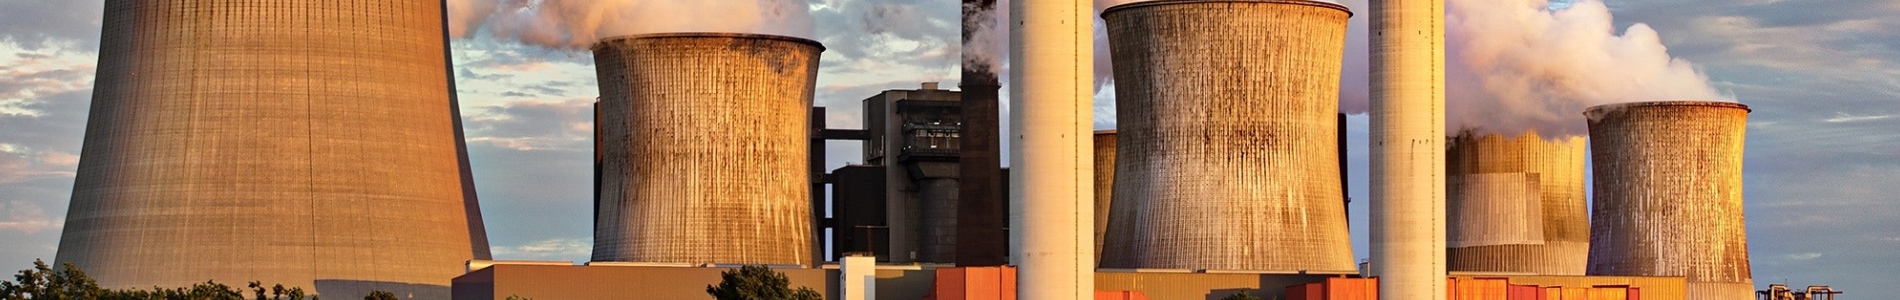 POWER PLANT, Leading Industrial Filtration Solution Provider